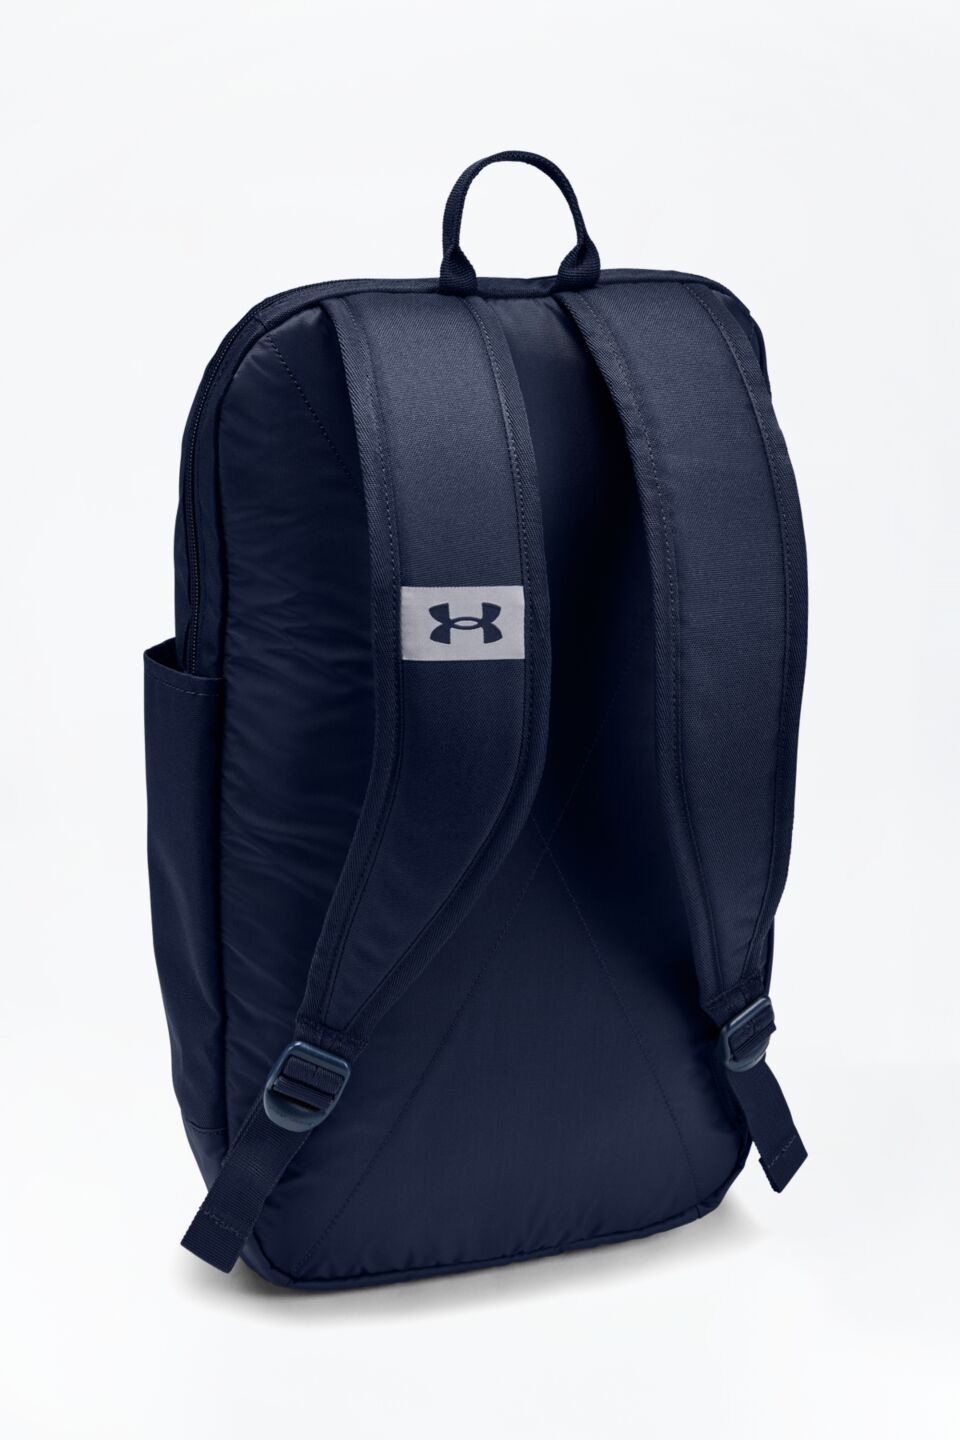 PATTERSON BACKPACK 408 NAVY